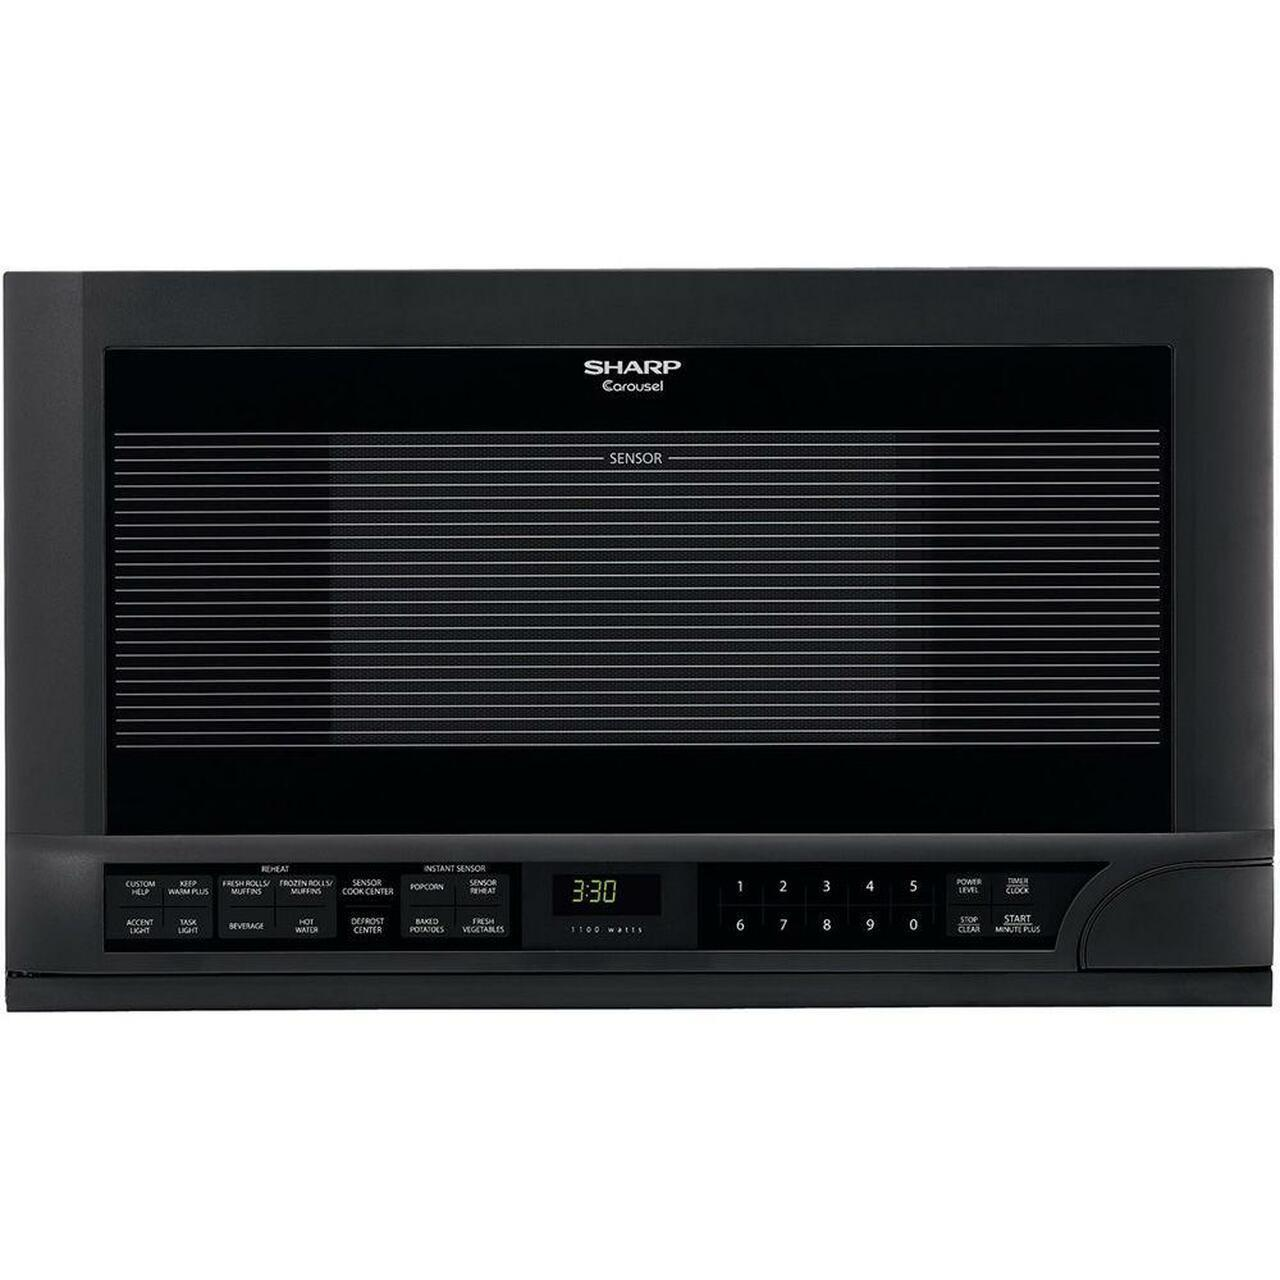 1.5 cu. ft. 1100W Black Sharp Over-the-Counter Carousel Microwave Oven